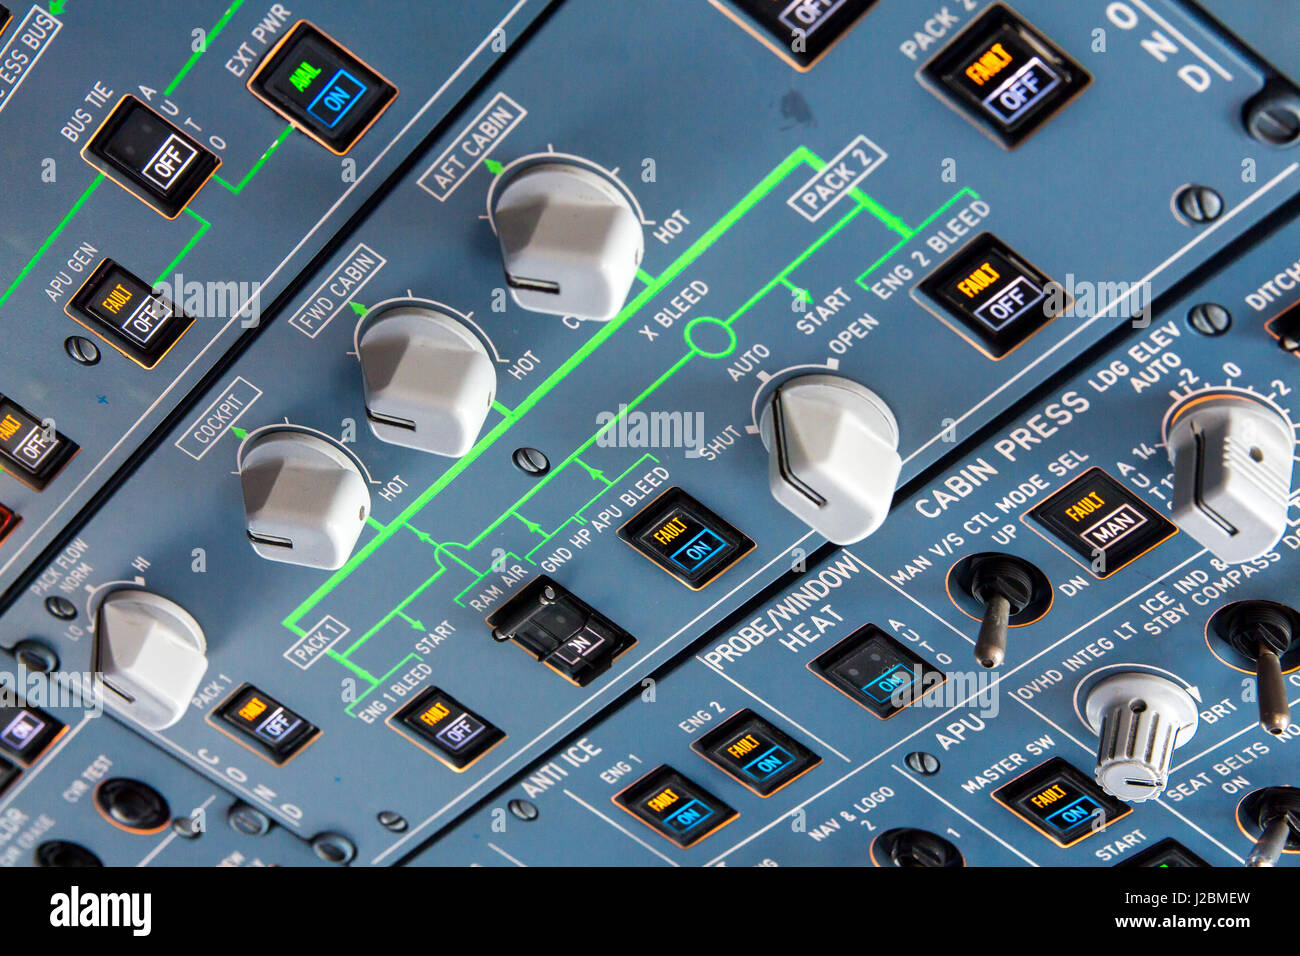 Airbus A320 overhead panel with switches and knobs for controlling various aircraft systems and components. - Stock Image